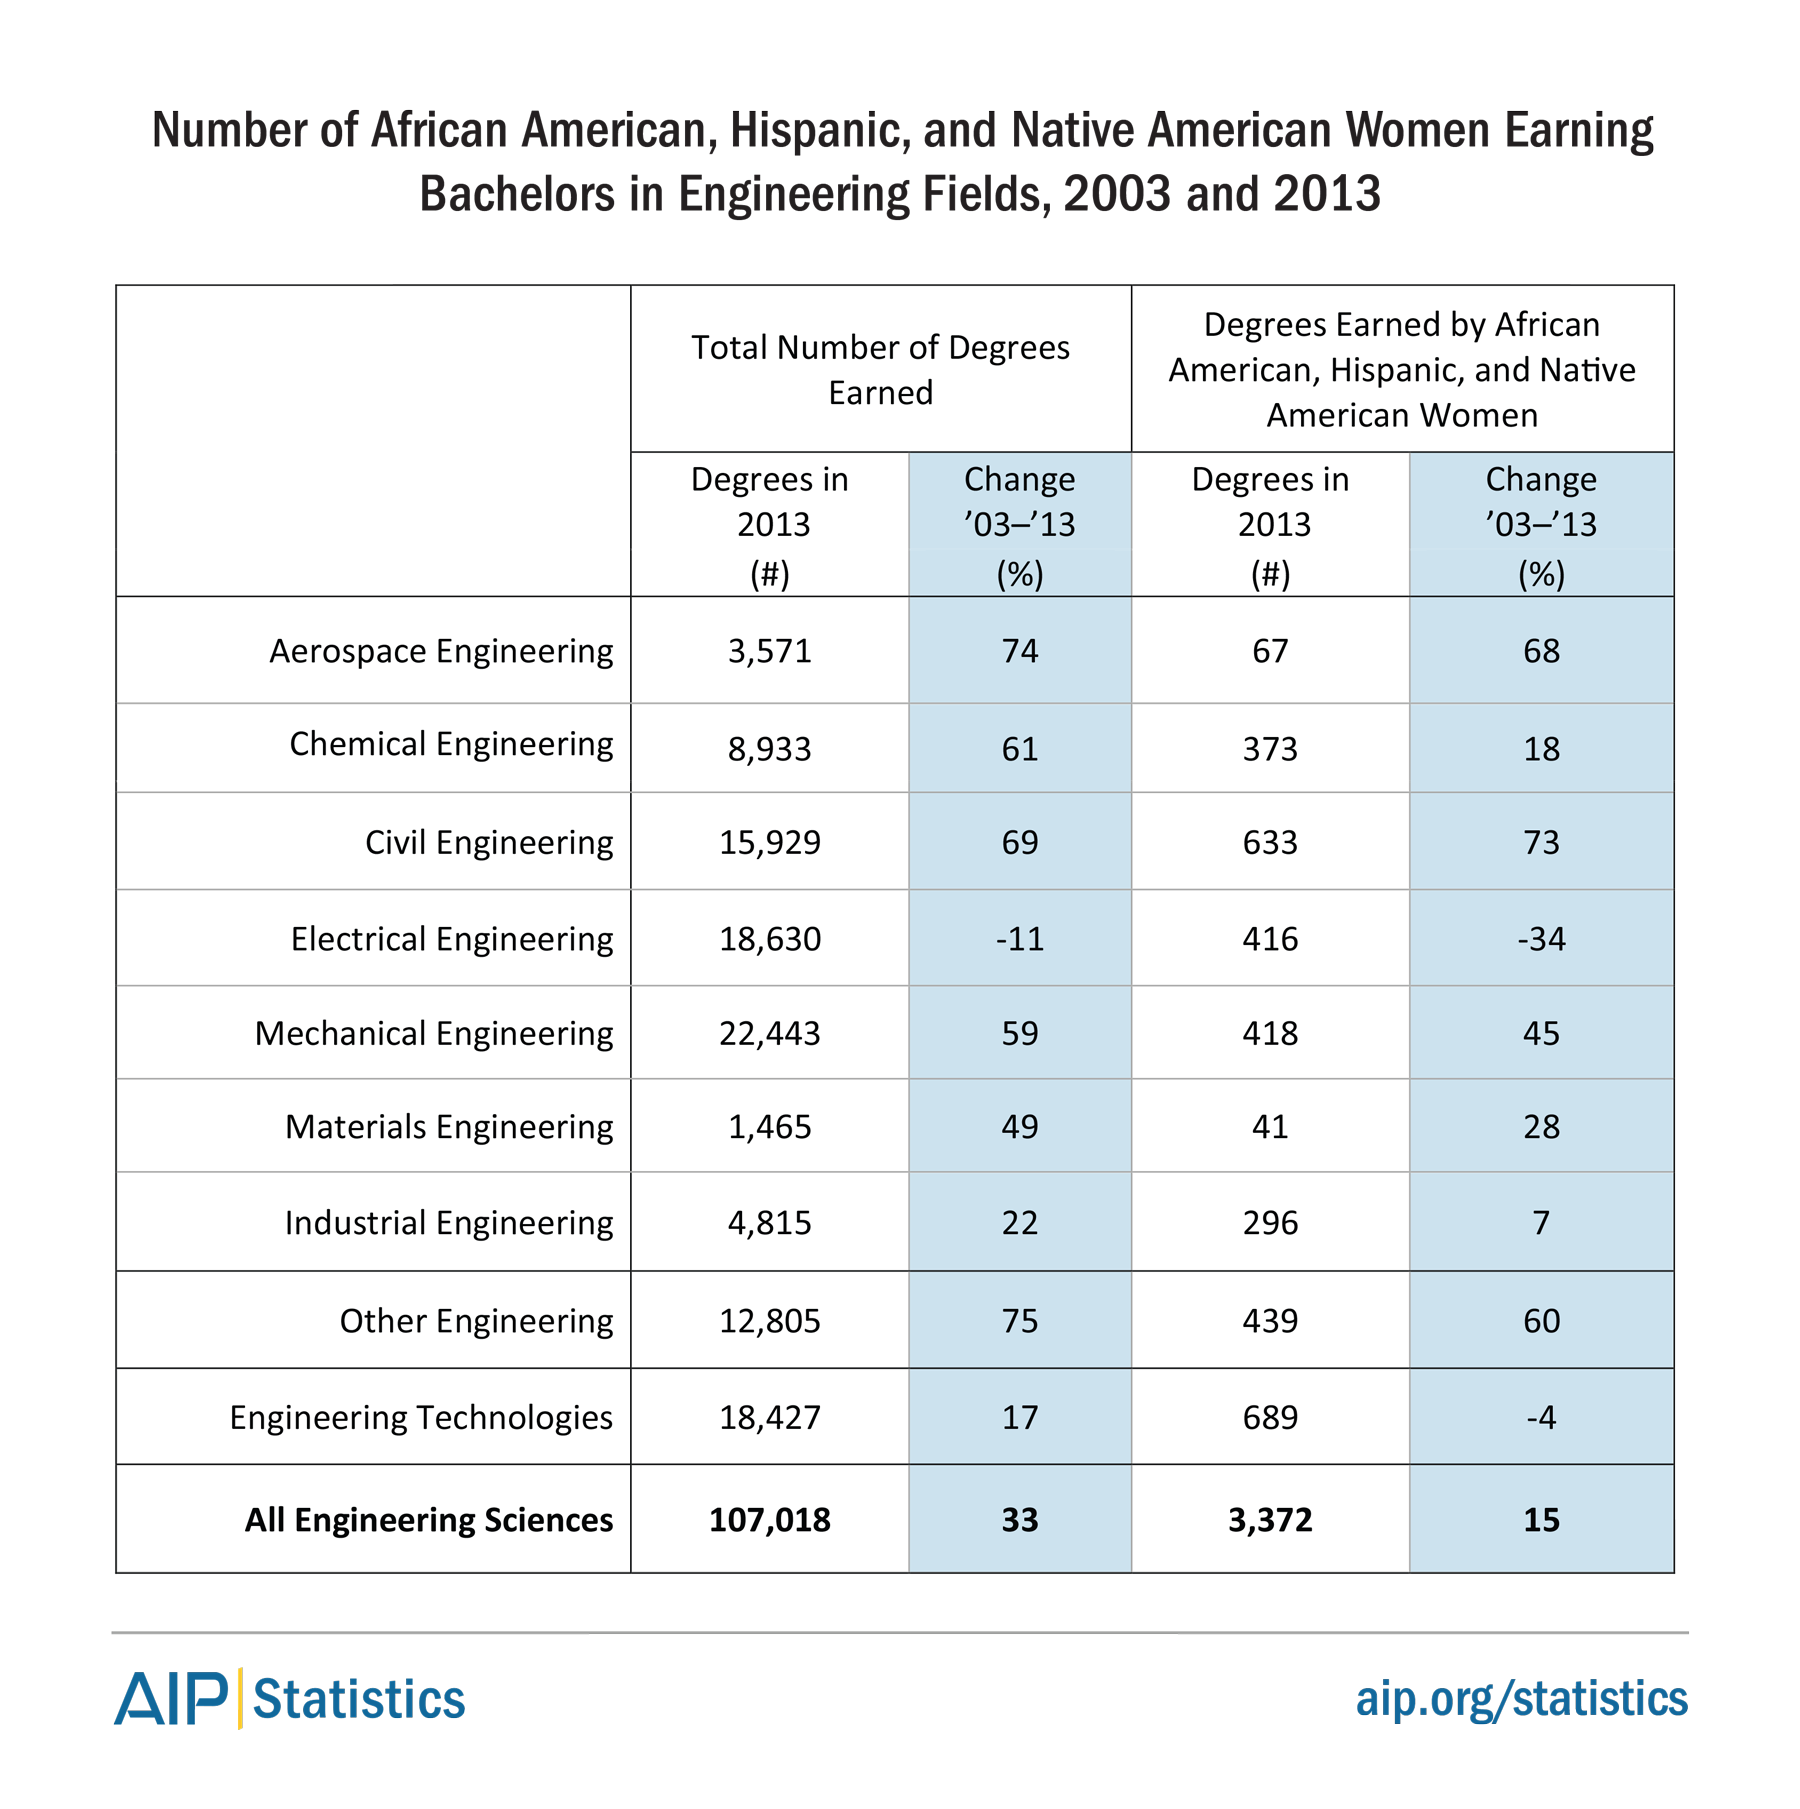 Number of African American, Hispanic, & Native American Women Earnings Bachelors in Engineering Fields, 2003 & 2013